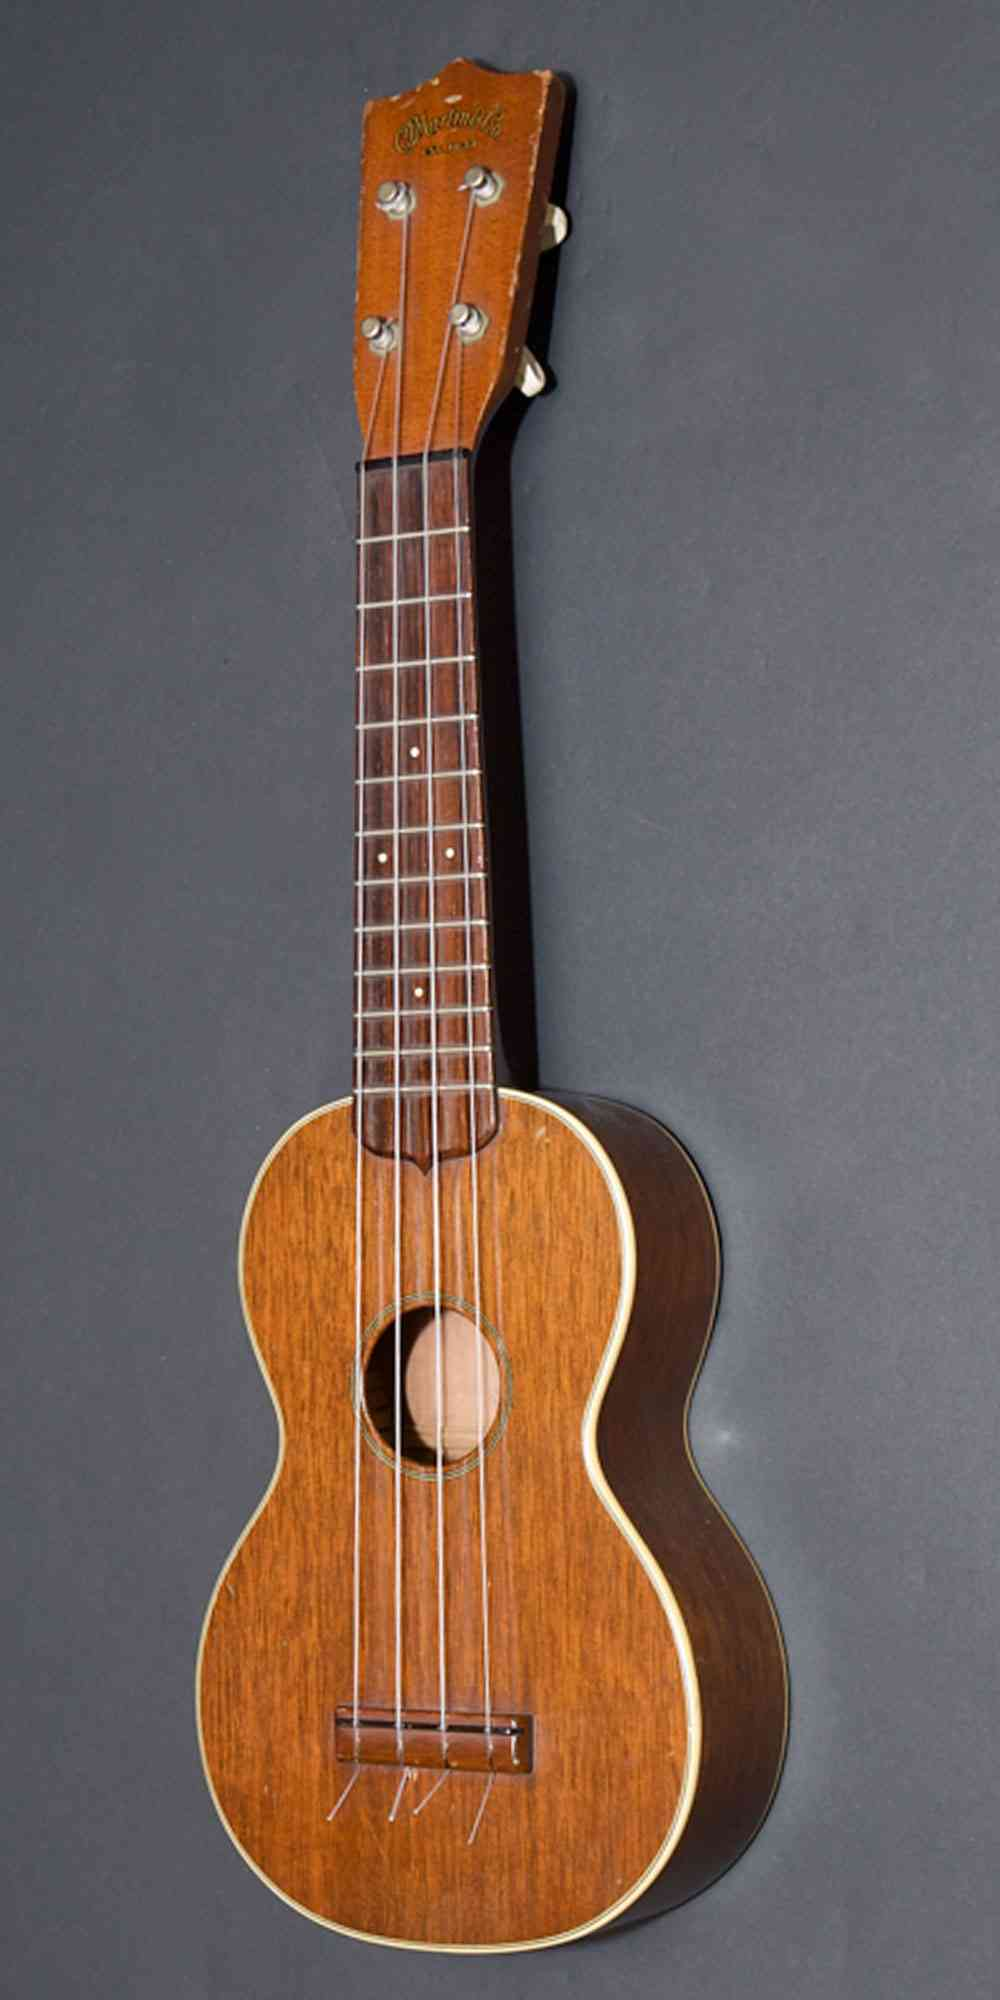 Martin Style 2 Ukulele. Click to enlarge